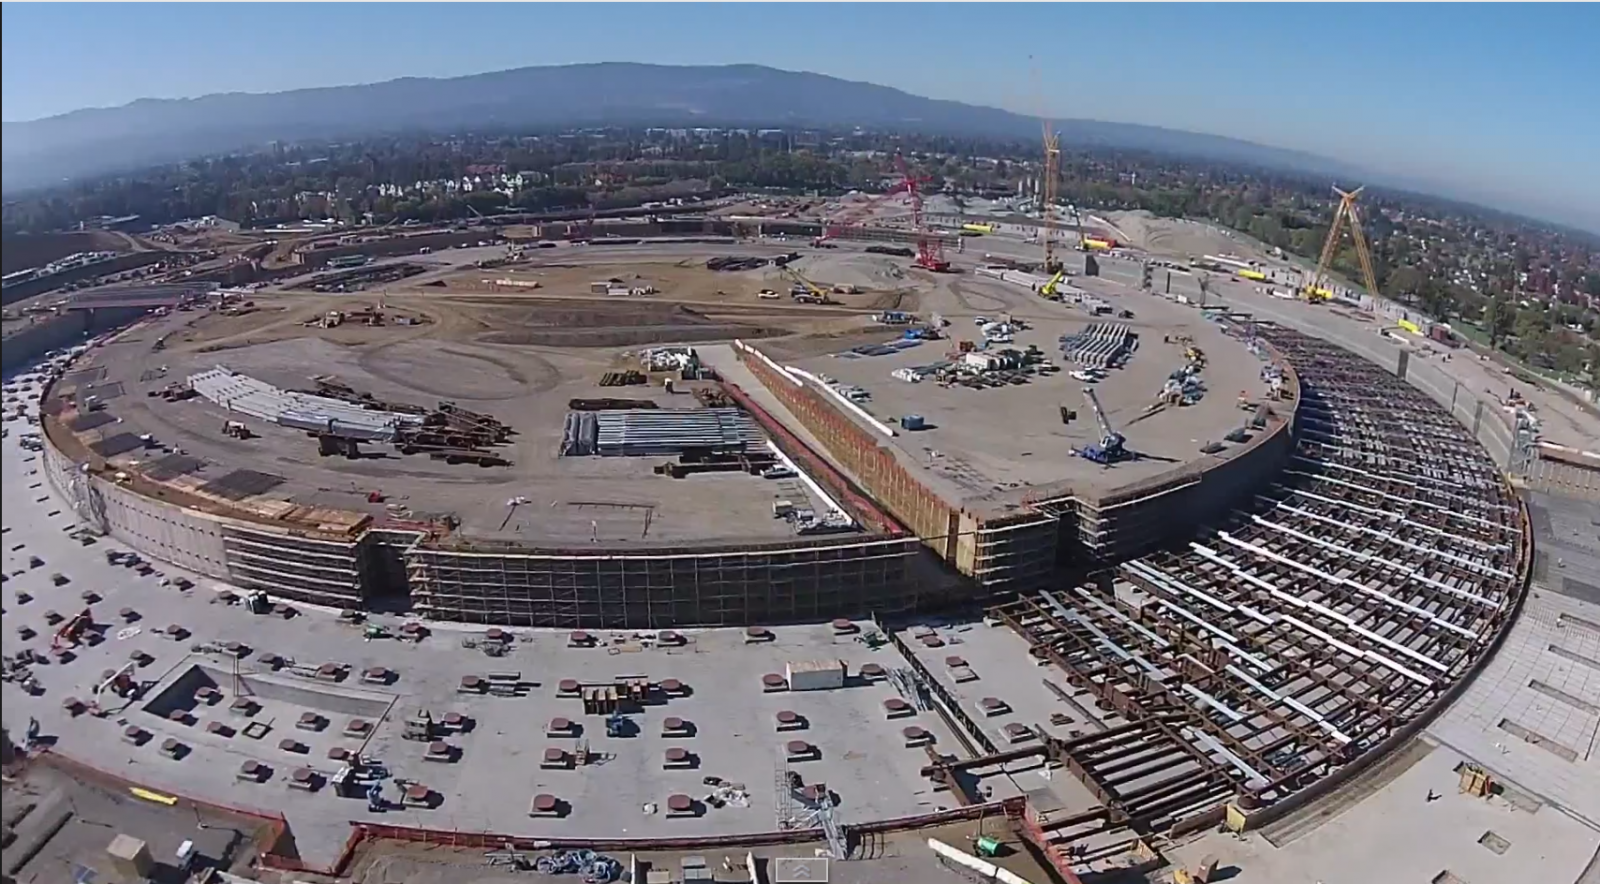 campus  drone footage shows size scale apples spaceship headquarters